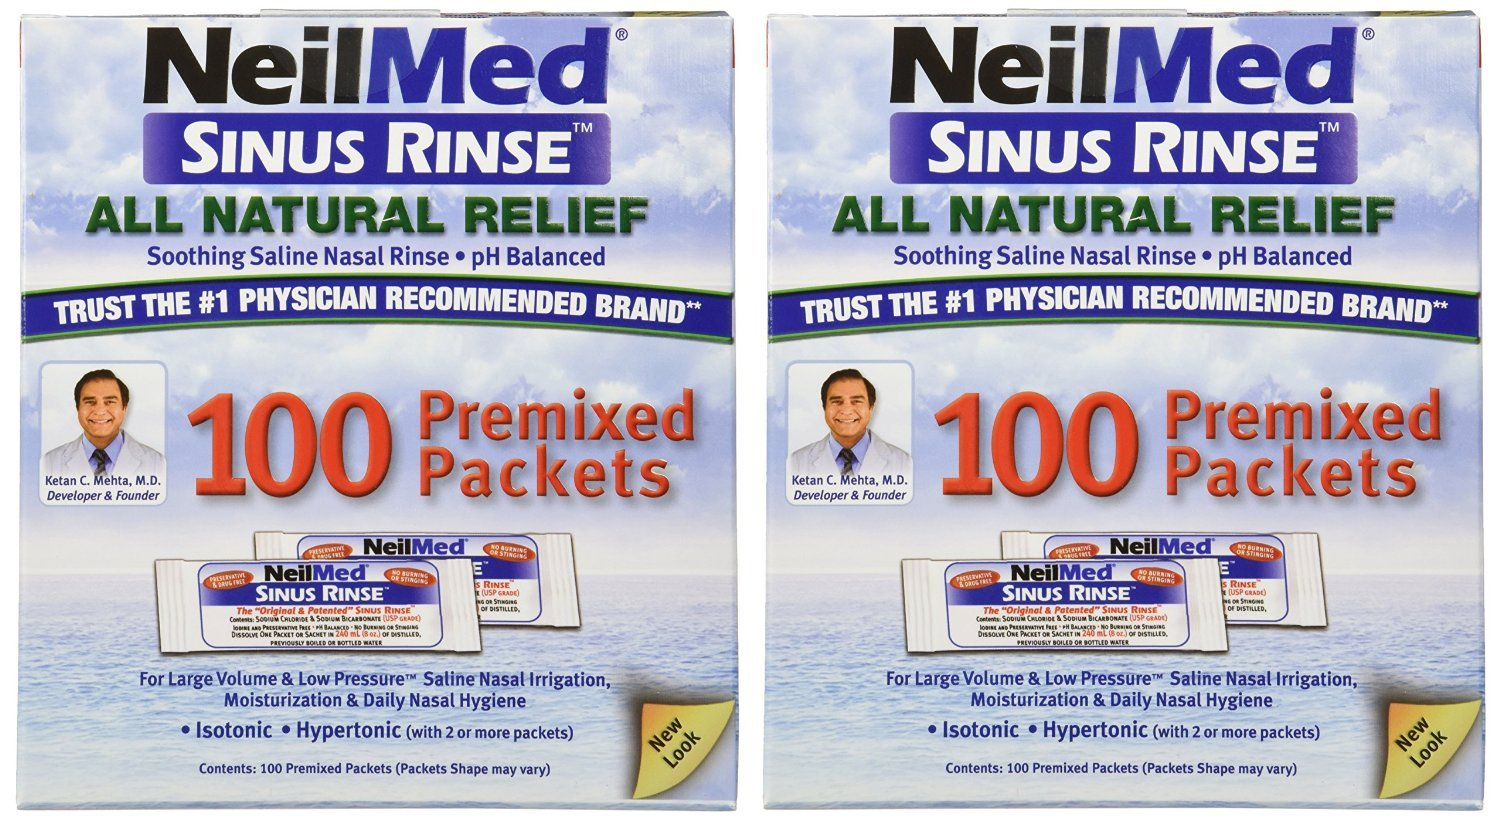 NeilMed Rinse Regular Mixture Packets for Allergies and Sinus, 200 Count (Pack of 10) by NeilMed